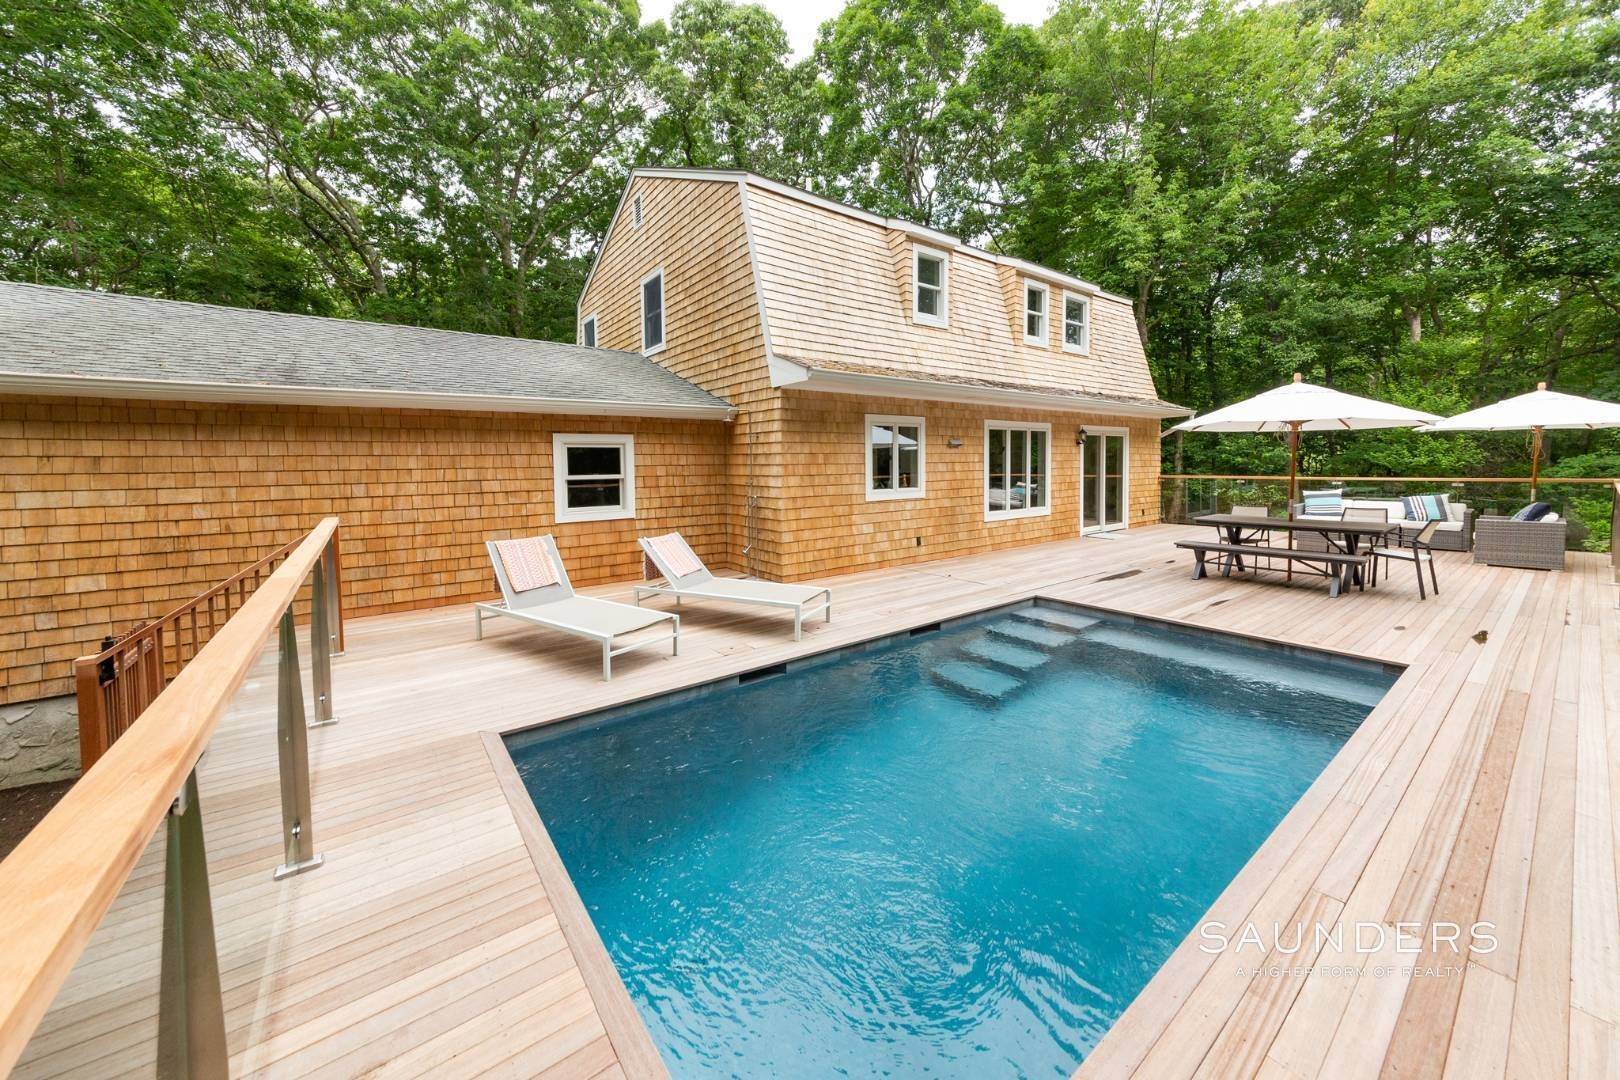 Single Family Homes at Chic Southampton Home Close To Village And Beaches Undisclosed Address, Southampton, Southampton Town, NY 11968